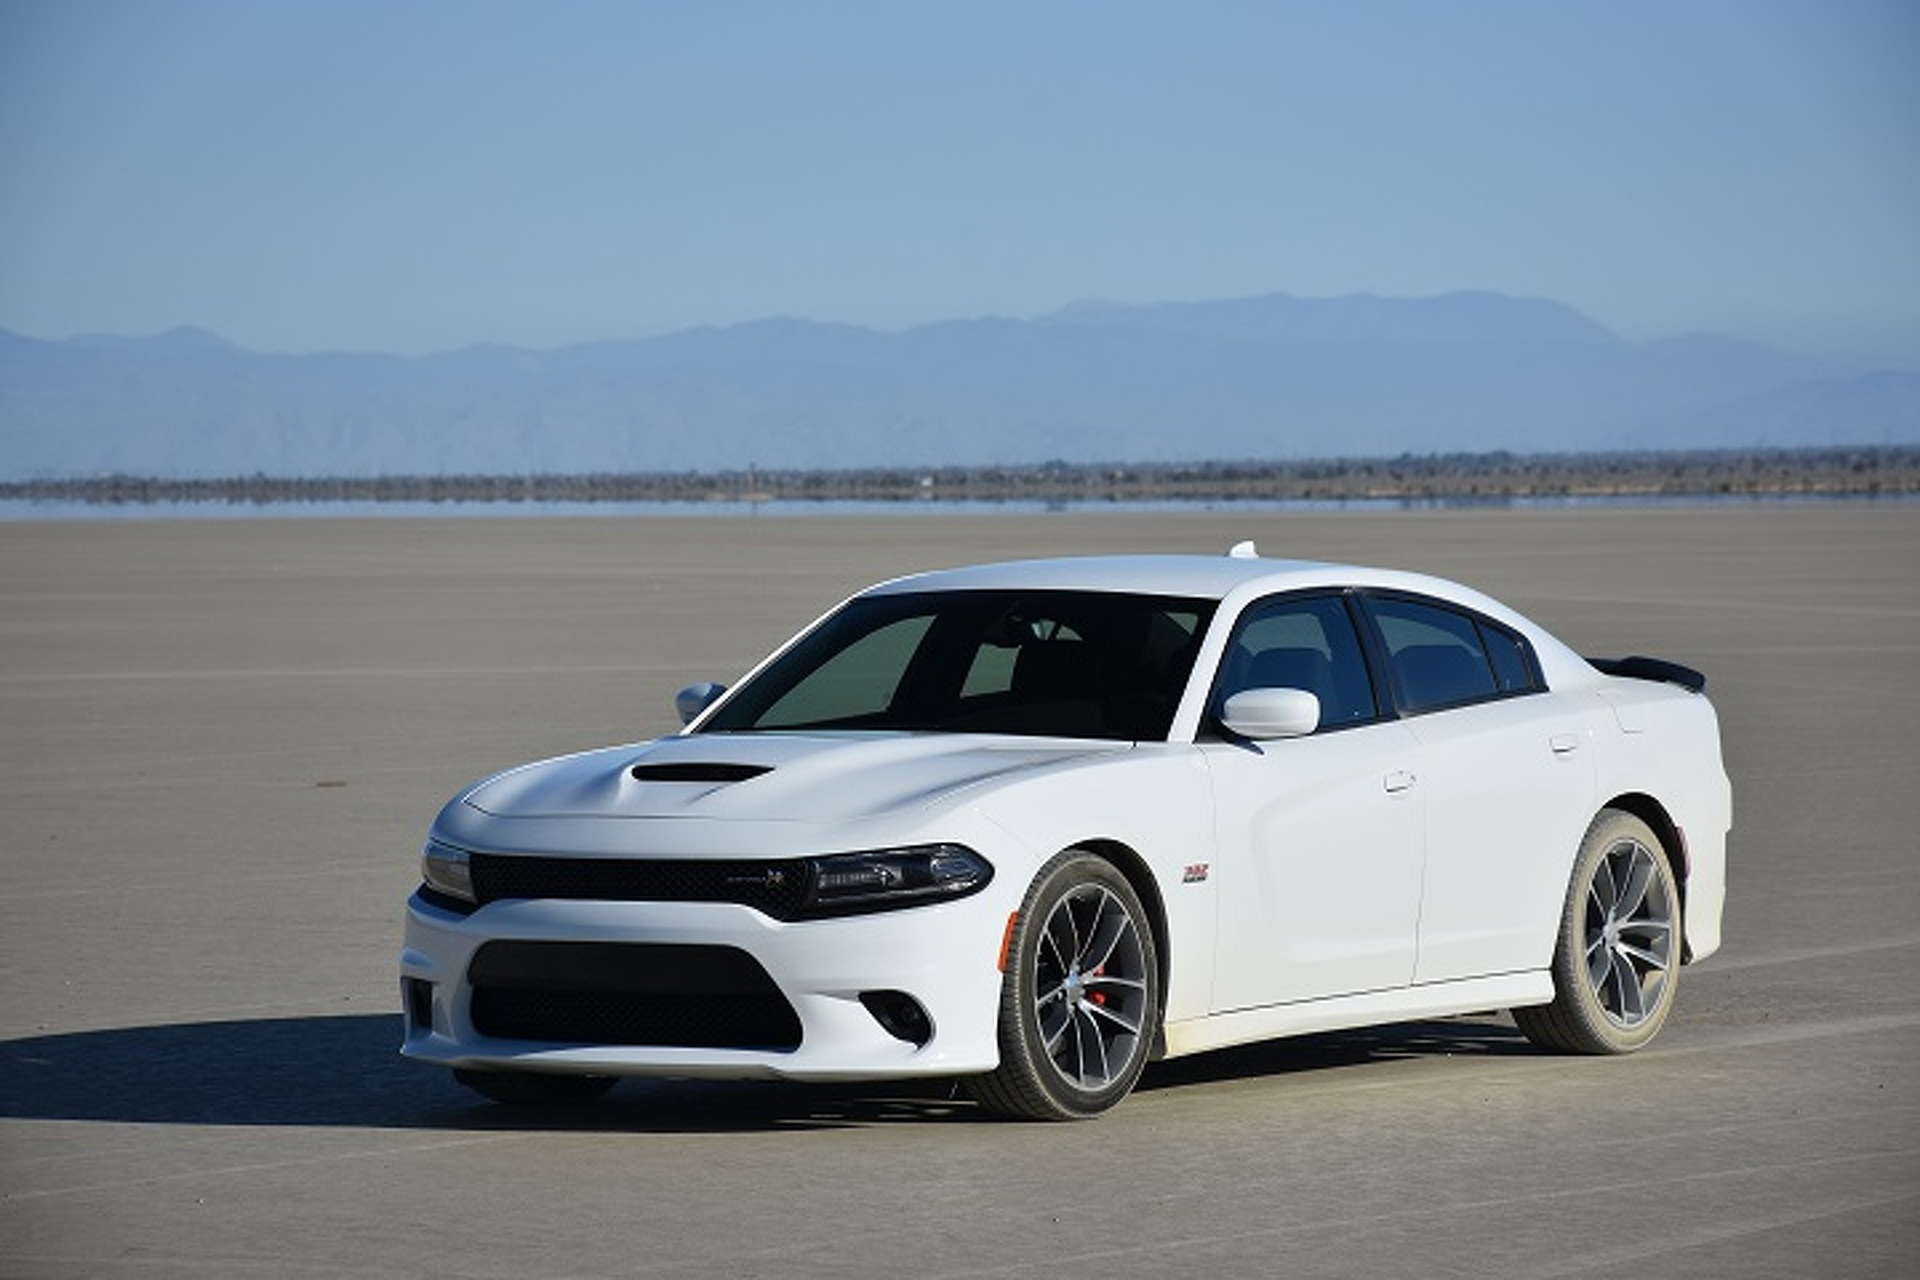 2017 Dodge Charger Rt White >> Dodge Charger Scat Pack vs El Mirage